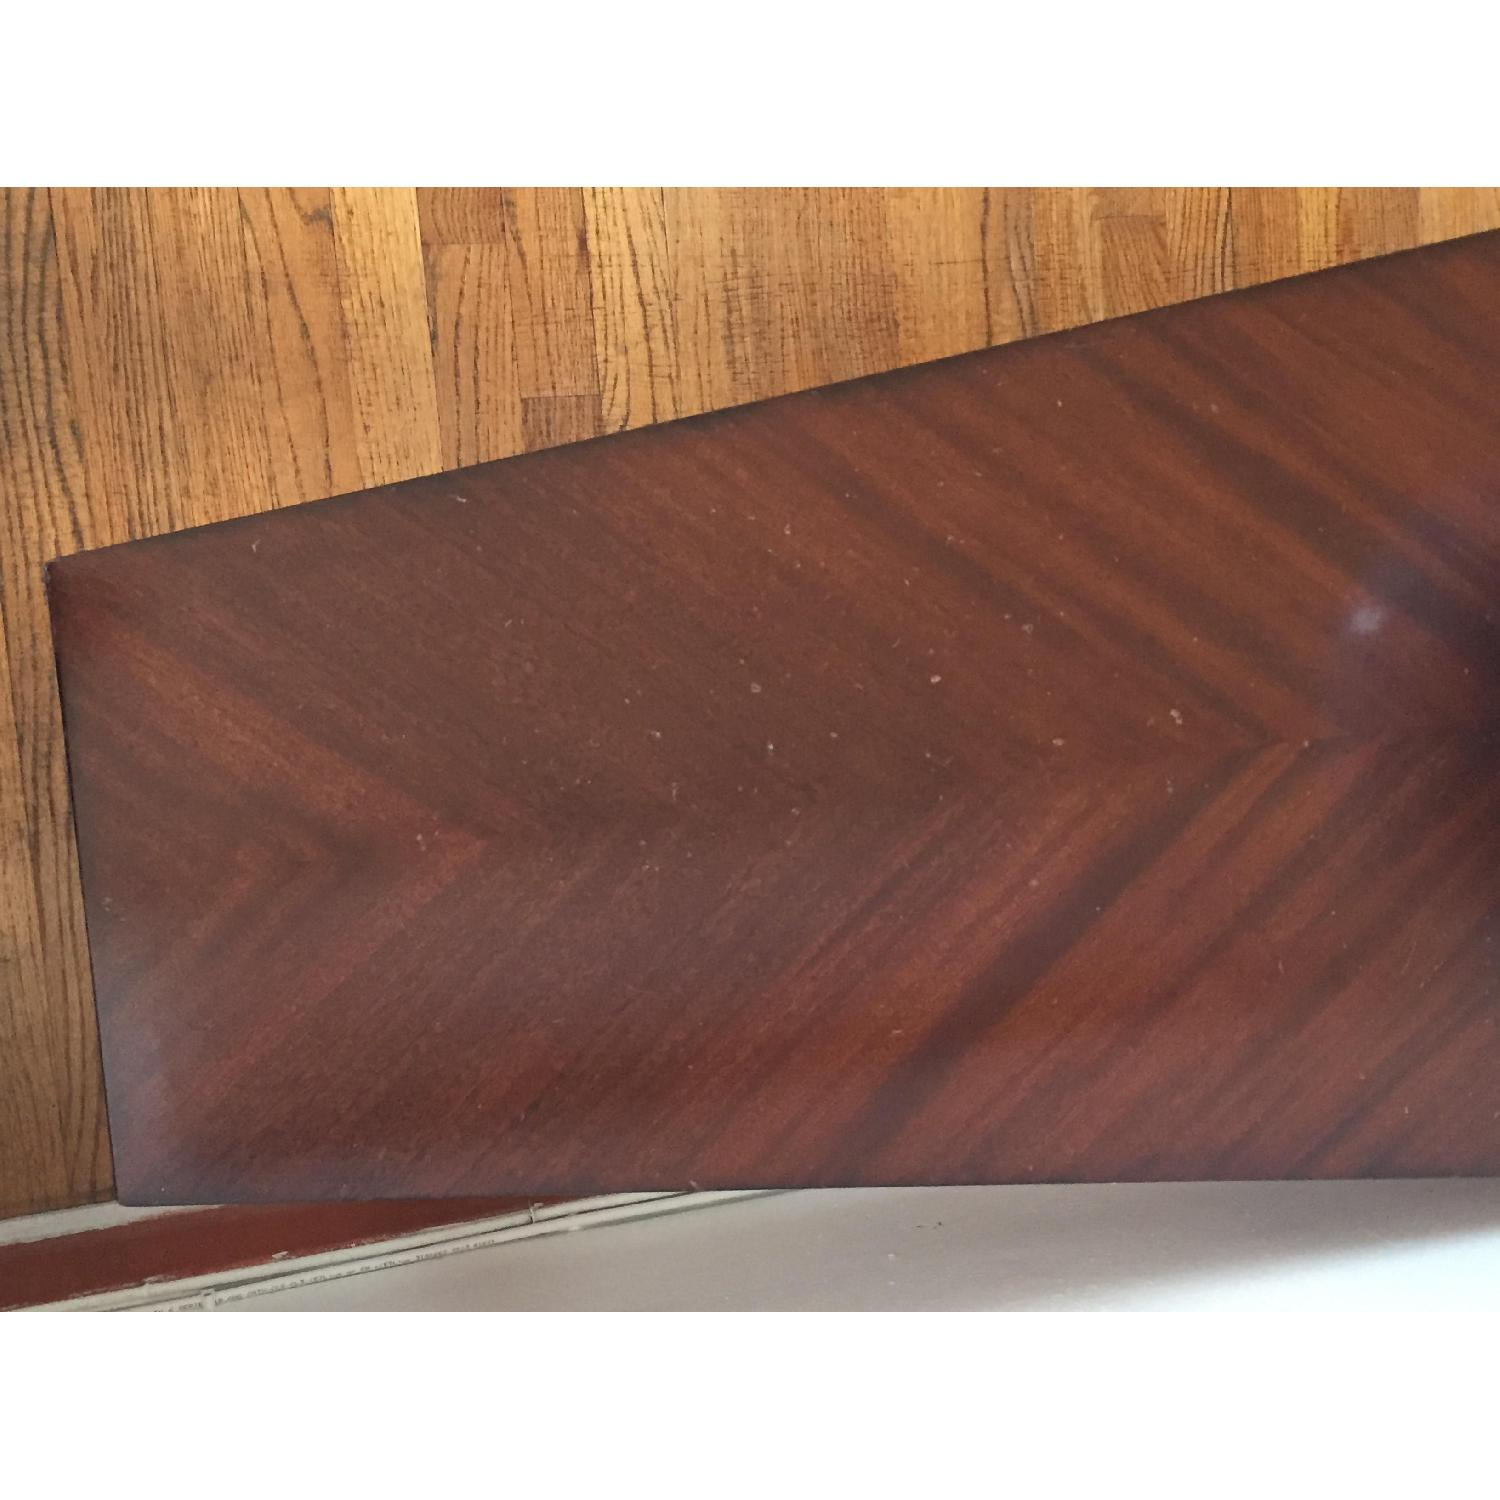 Mitchell Gold + Bob Williams Surfboard Coffee Table - image-8